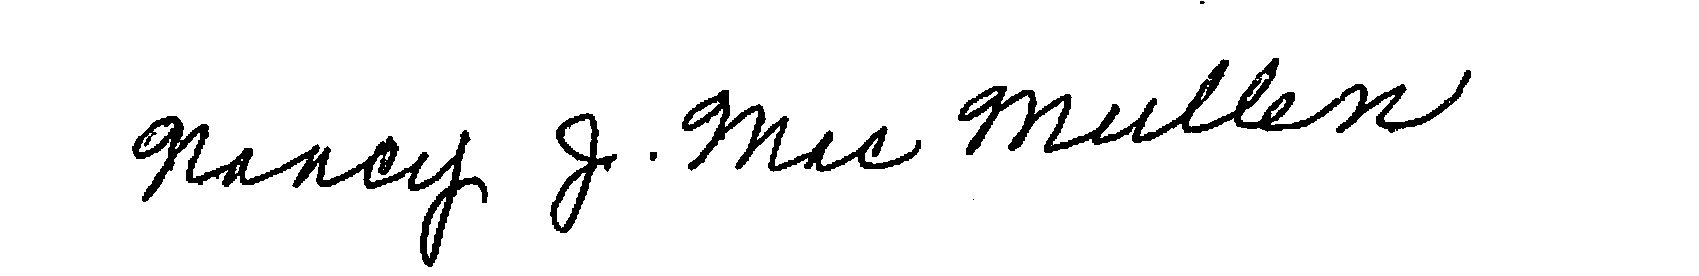 Nancy MacMullen signature